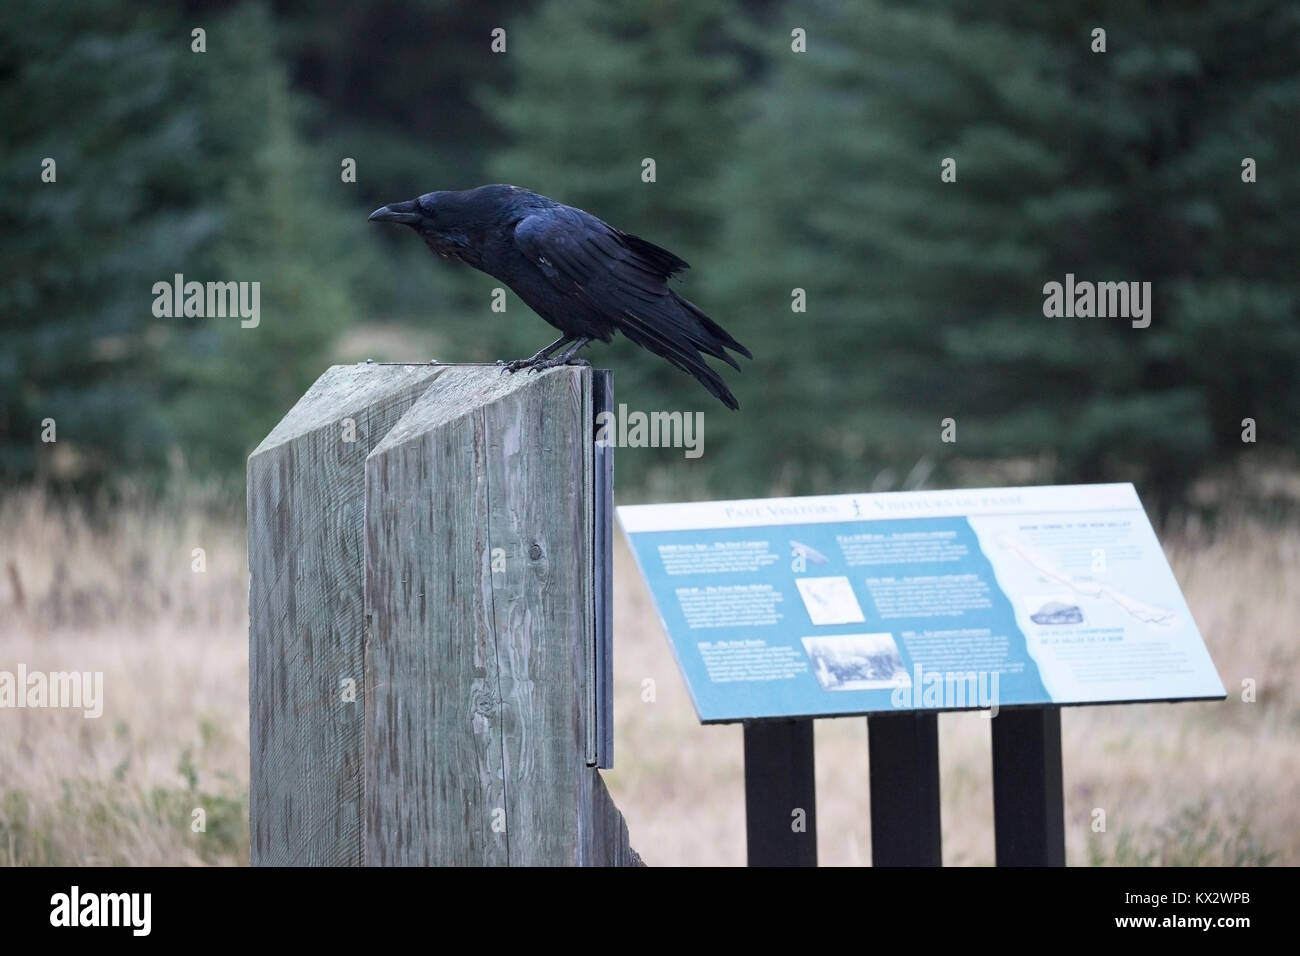 Raven perched on interpretive sign in Banff National Park - Stock Image